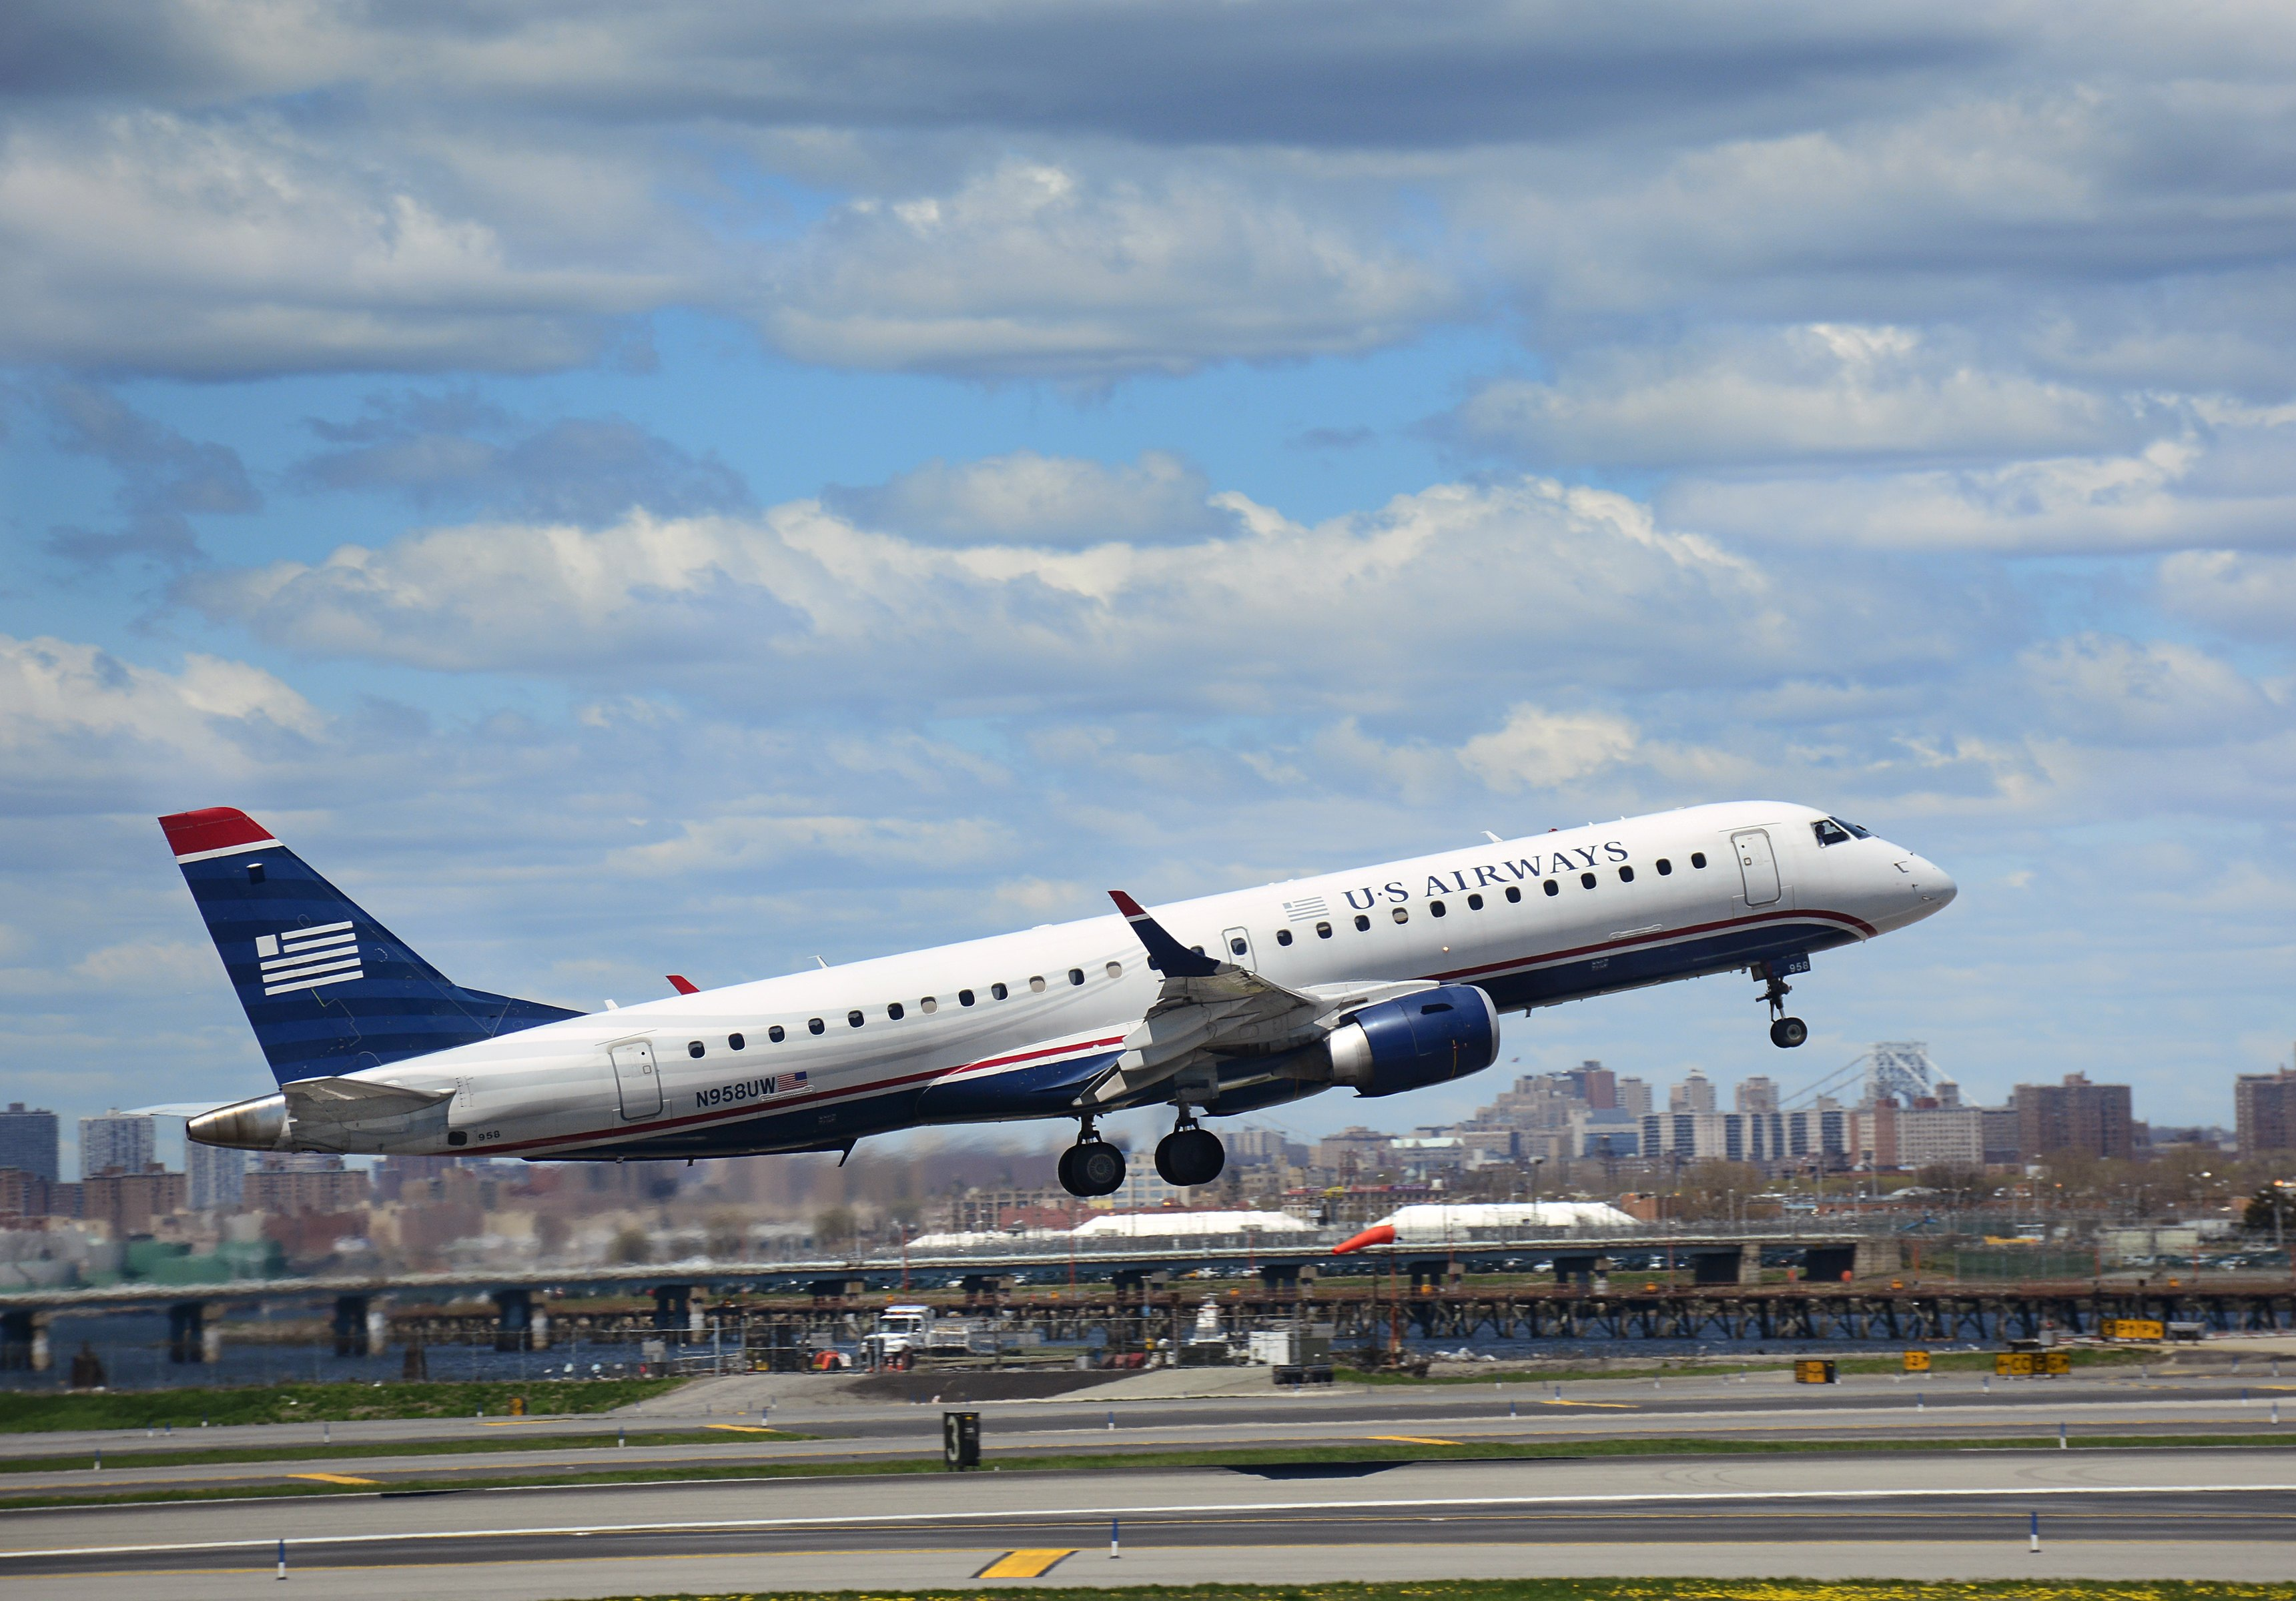 A U.S. Airways passenger aircraft (Bombardier CRJ-200) takes off from LaGuardia Airport in New York City, on April 18, 2015.